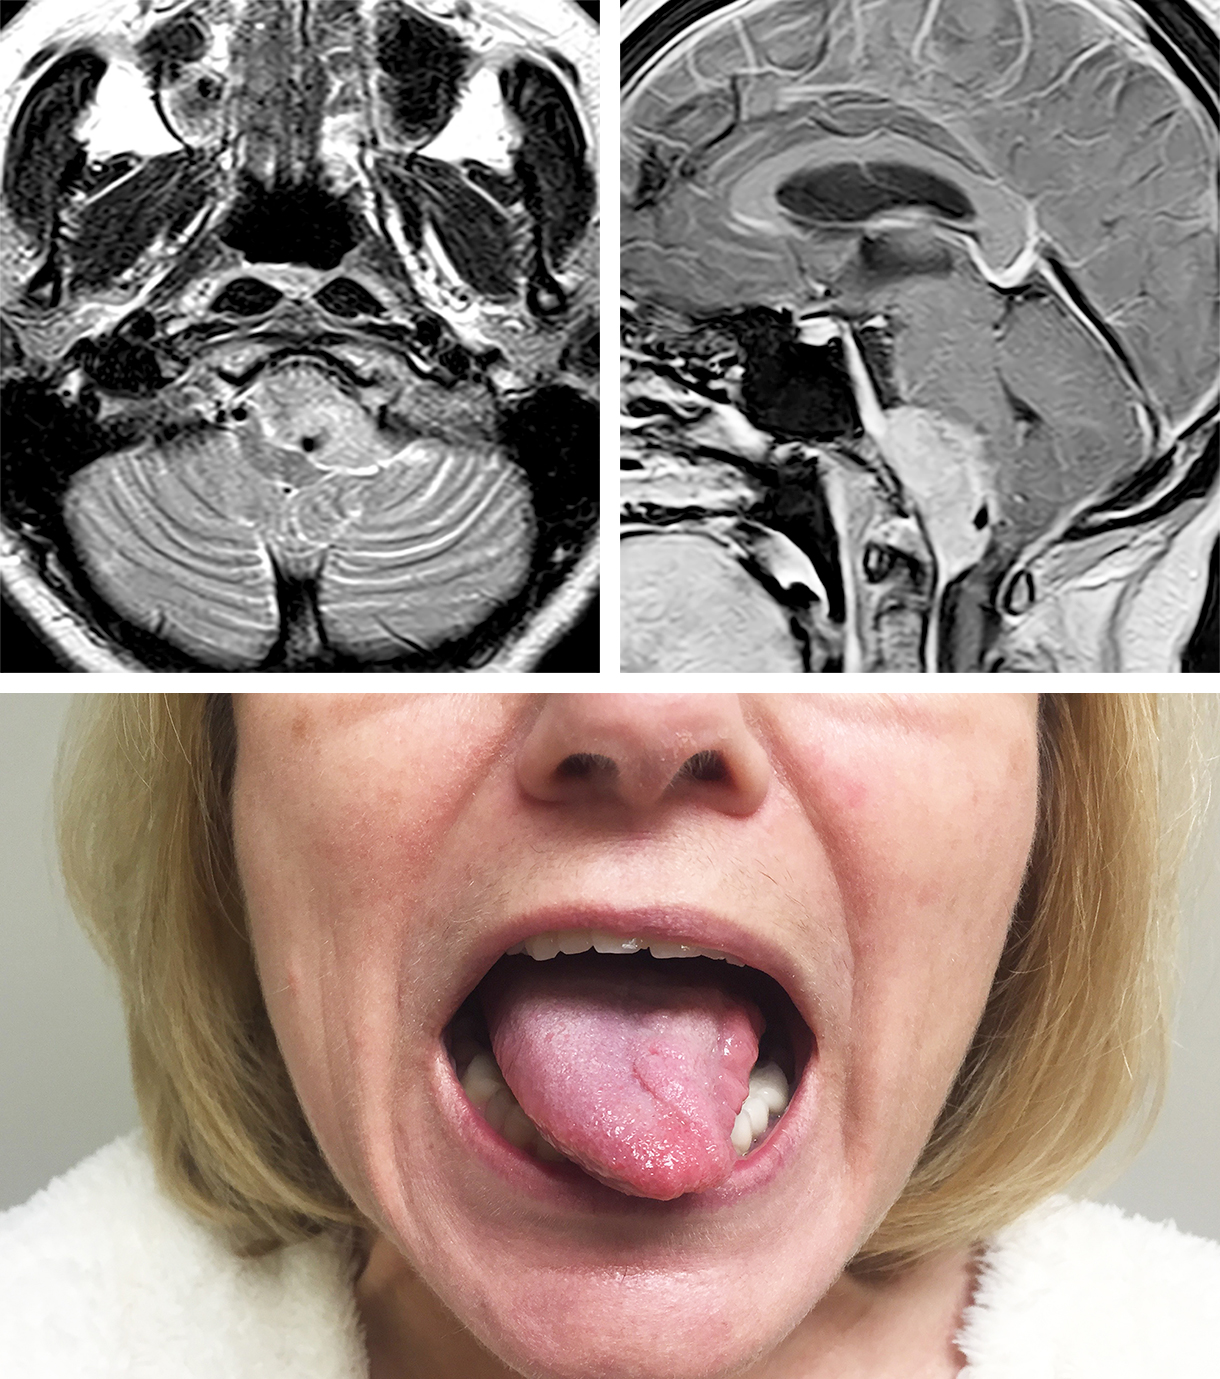 Figure 1: The tongue should be inspected at rest for atrophy and fasciculations. Note the foramen magnum meningioma in this patient associated with tongue atrophy and fasciculations.